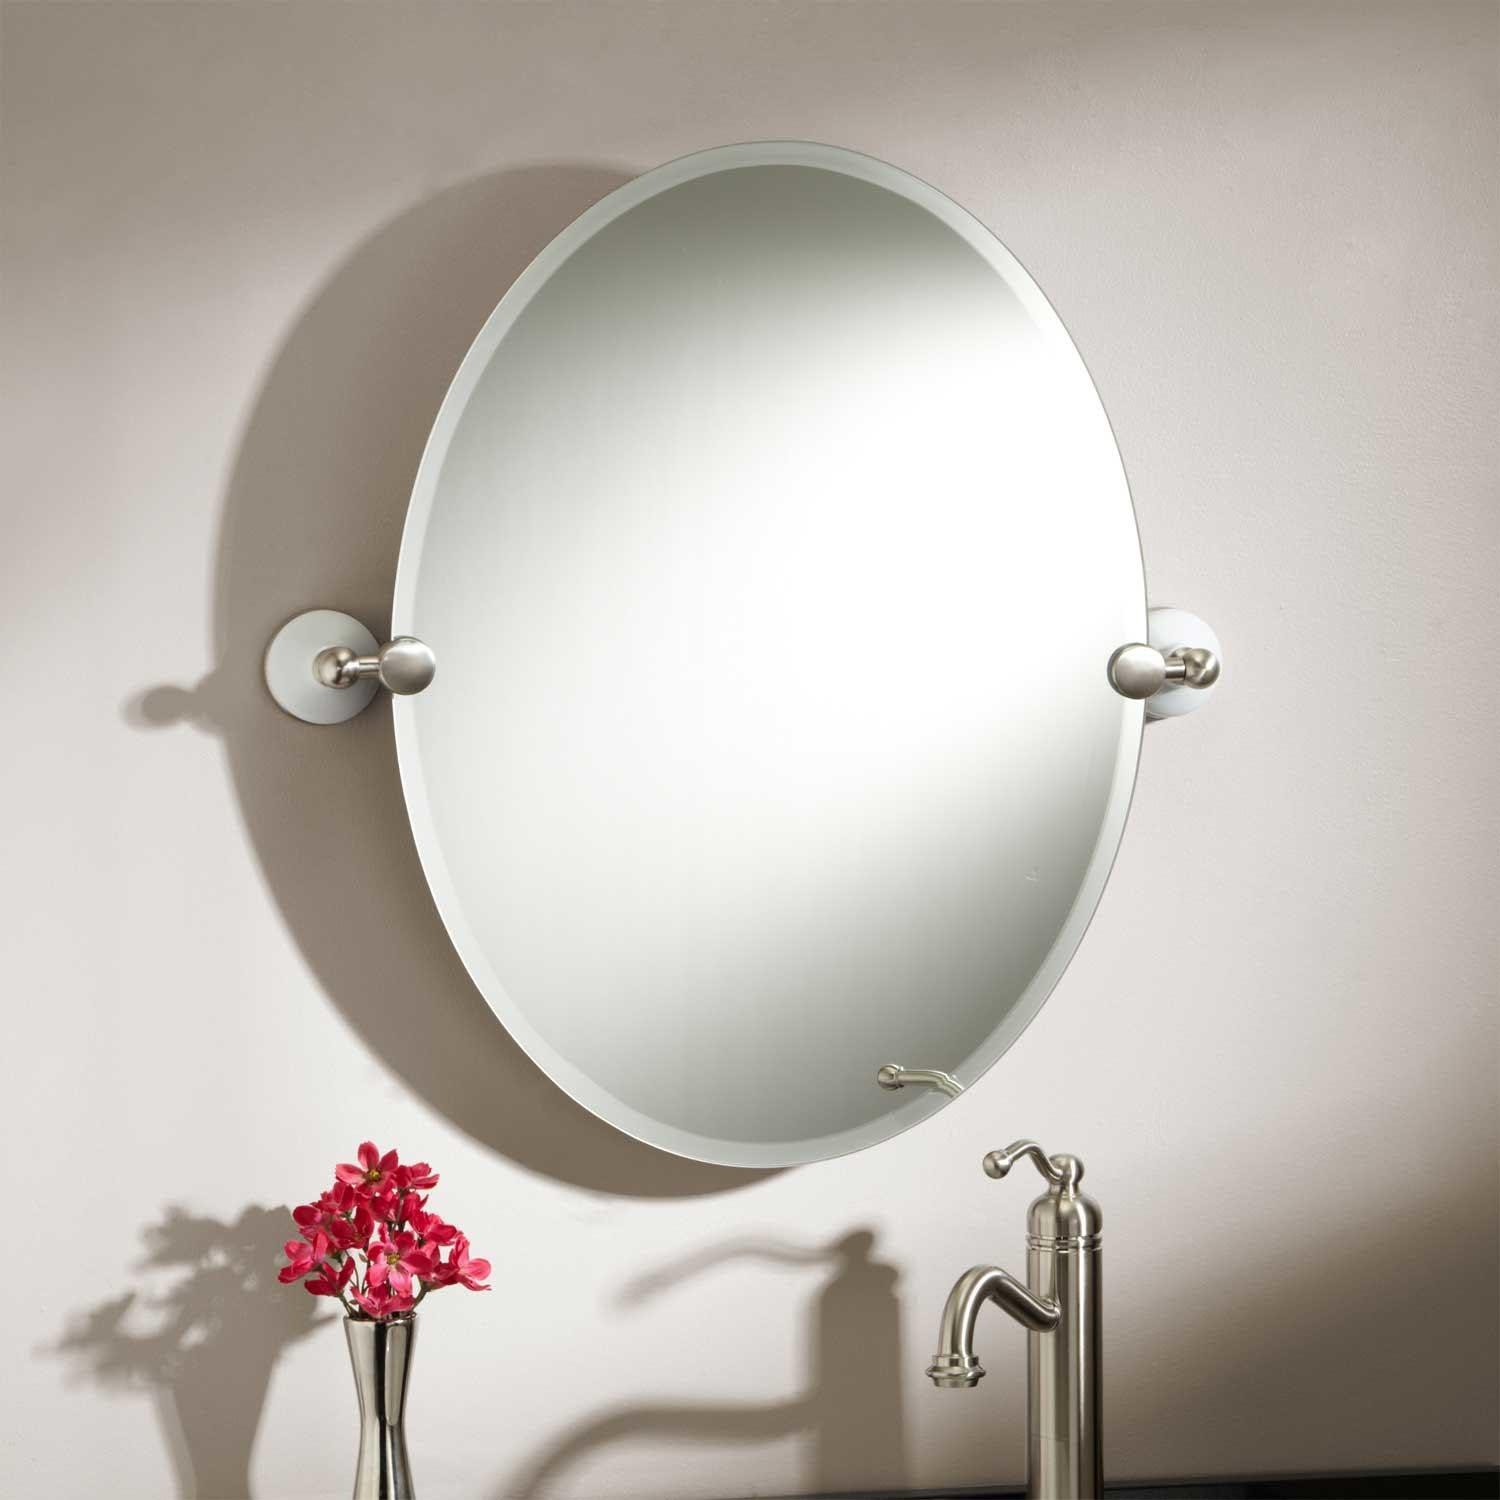 Oval Bathroom Mirrors Brushed Nickel | Best Decor Things Within Oval Bath Mirrors (View 17 of 20)